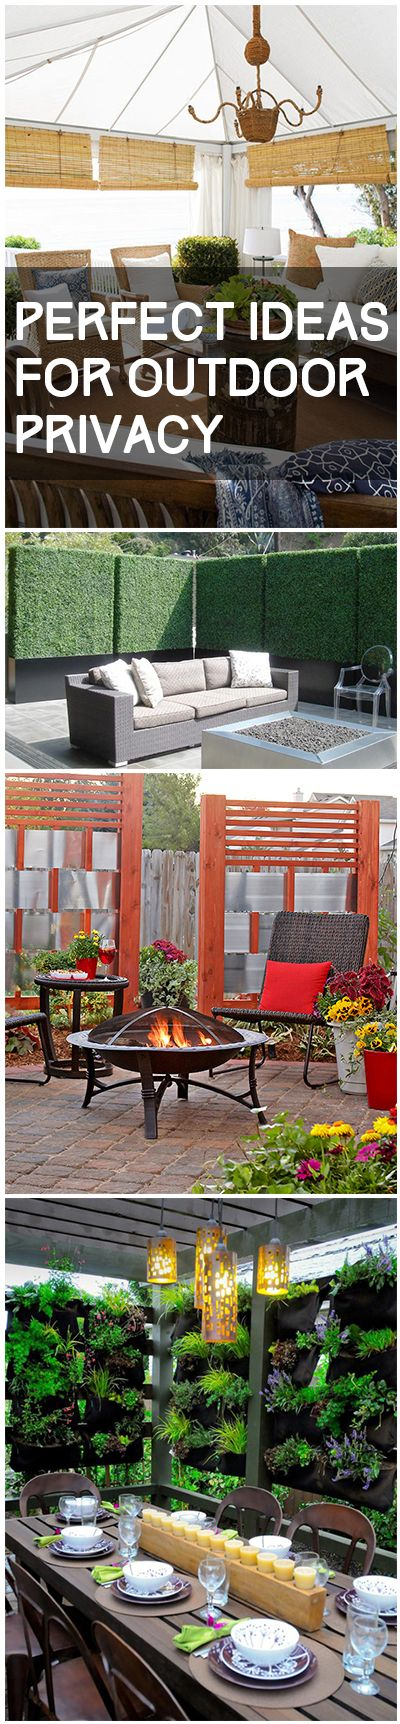 Perfect Ideas for Outdoor Privacy: